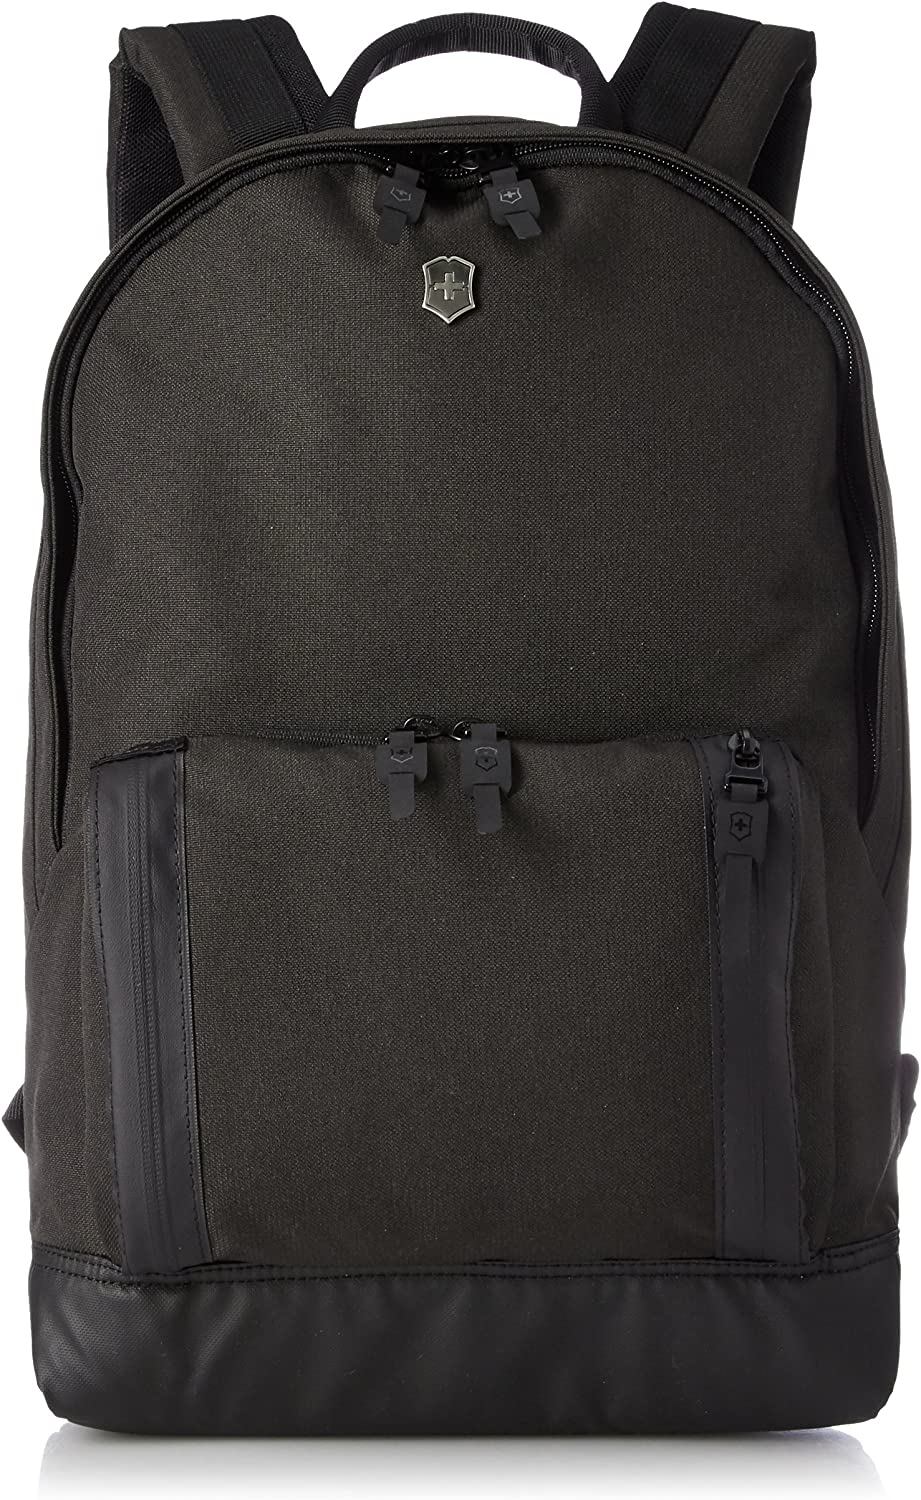 Victorinox Altmont Classic Laptop Backpack, Black, 17.3-inch